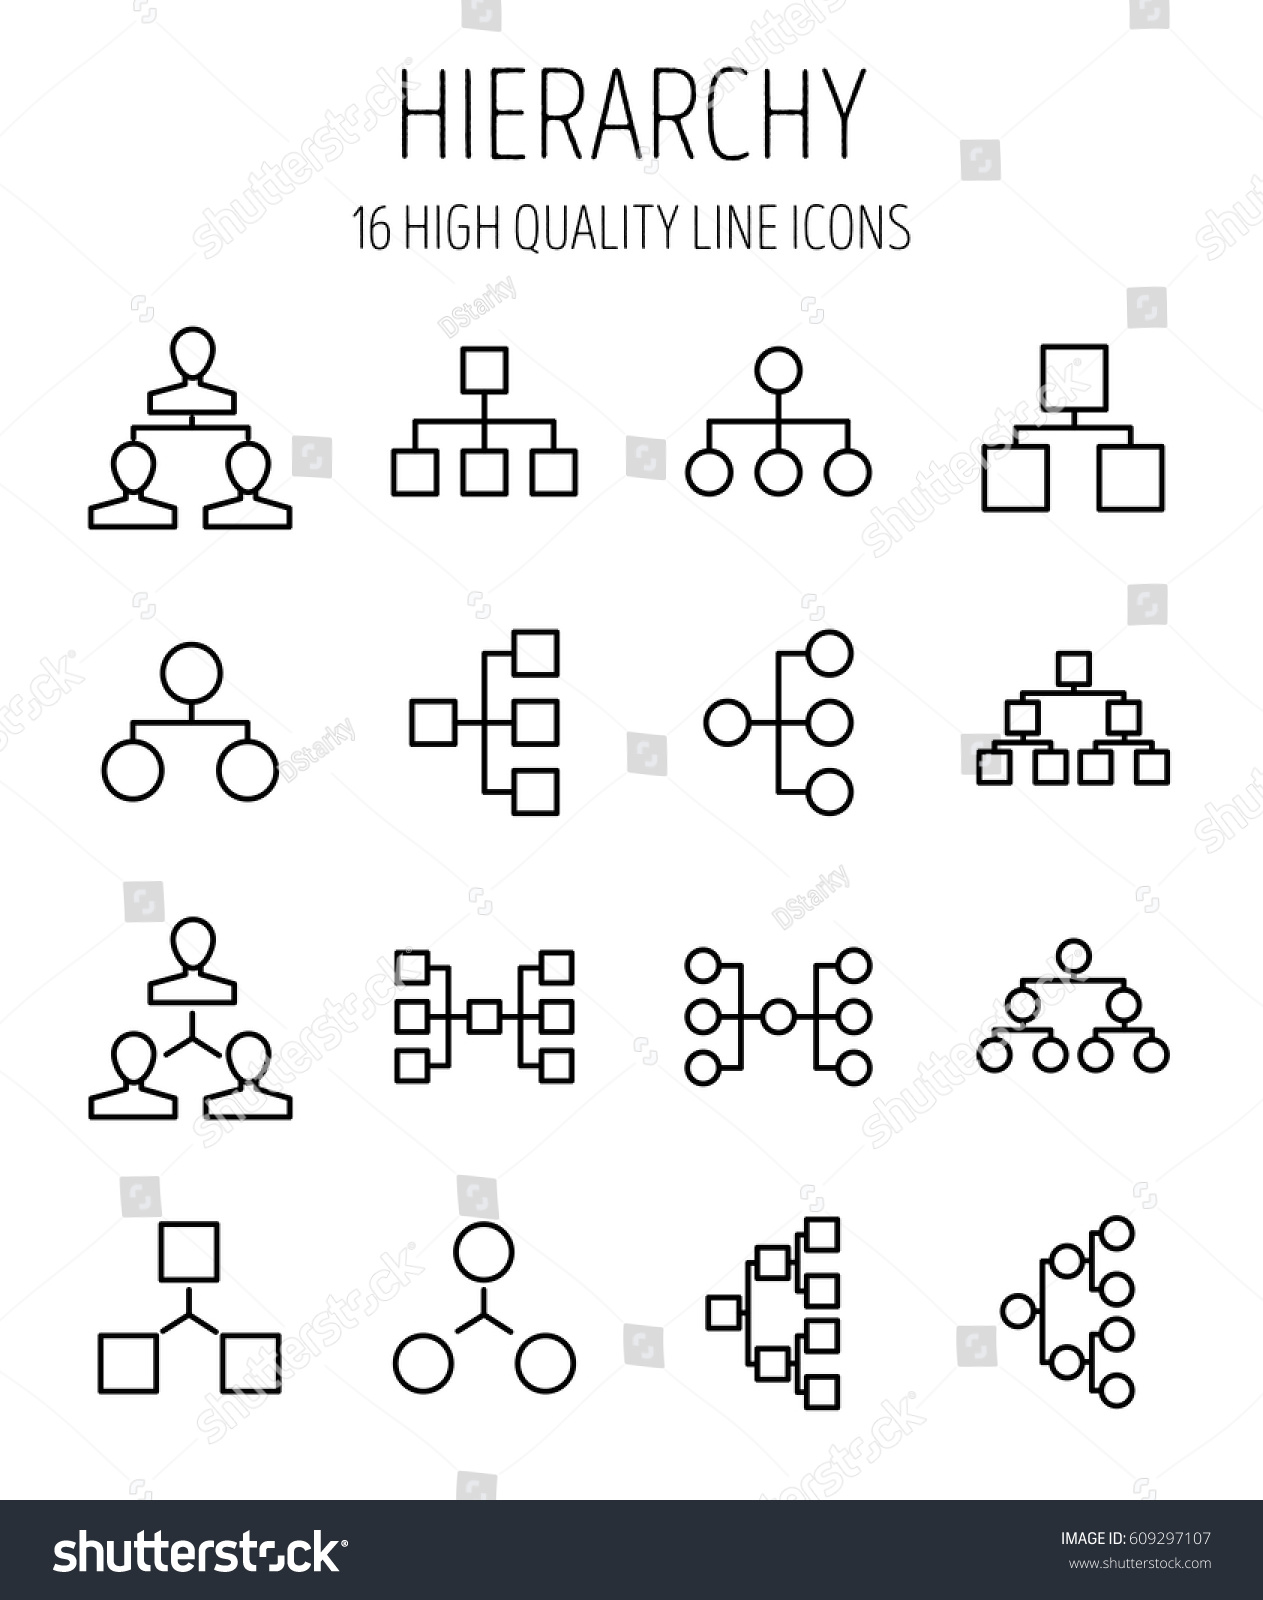 Set hierarchy icons modern thin line stock vector 609297107 set of hierarchy icons in modern thin line style high quality black outline sctructure symbols buycottarizona